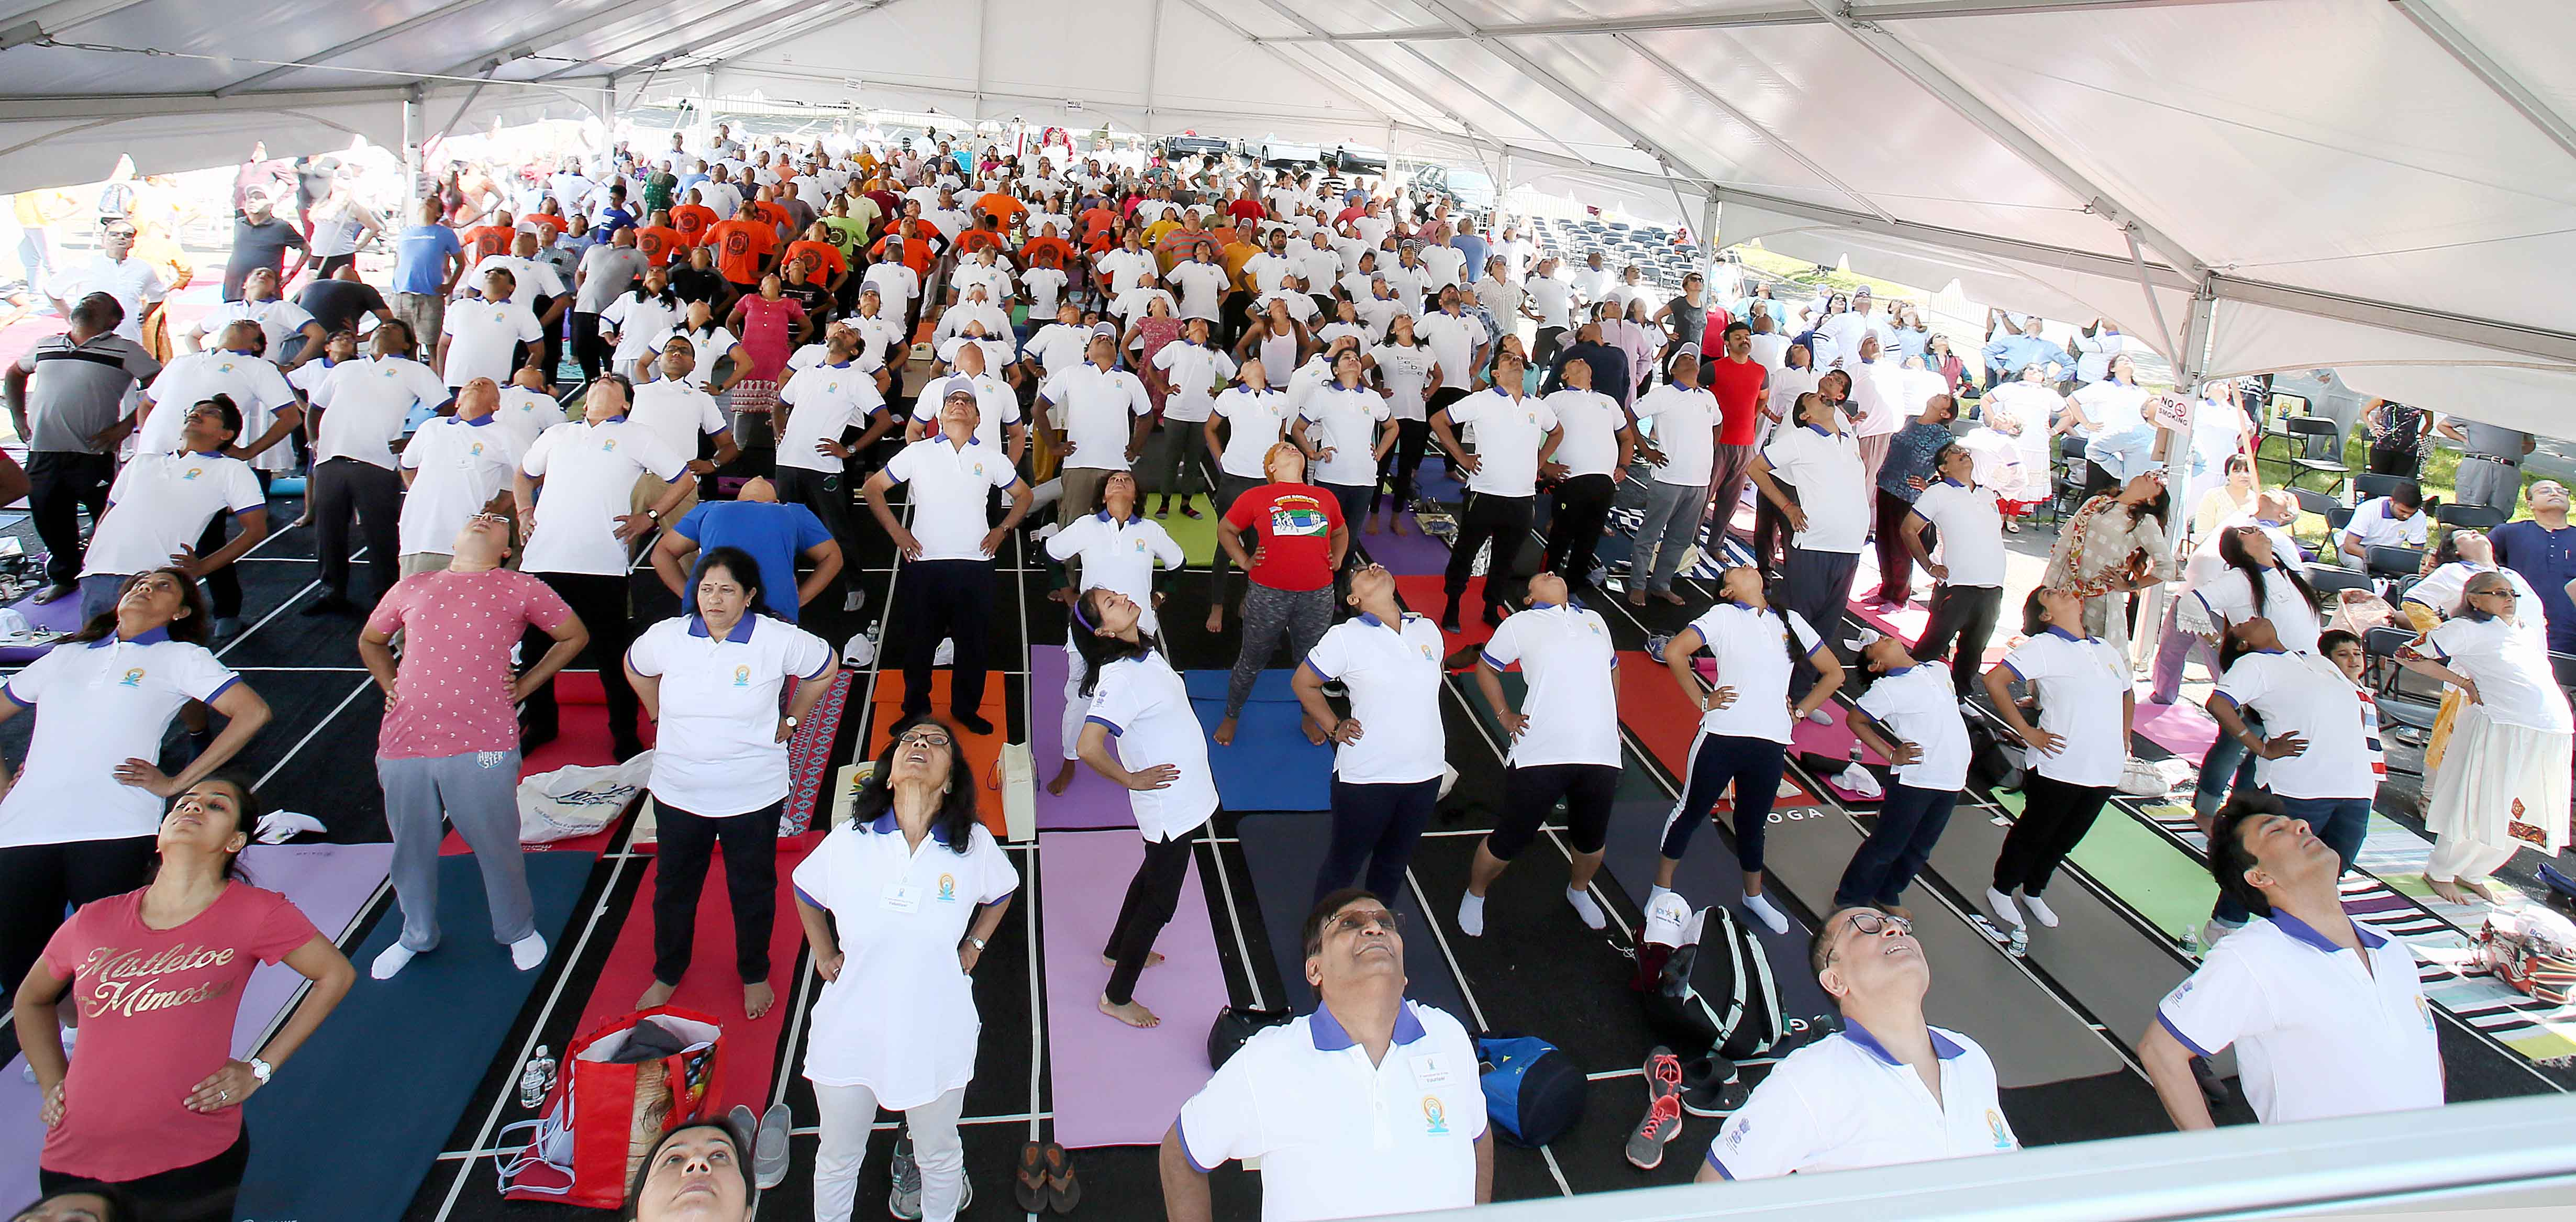 5th International Yoga Day celebrations on June 23, 2019